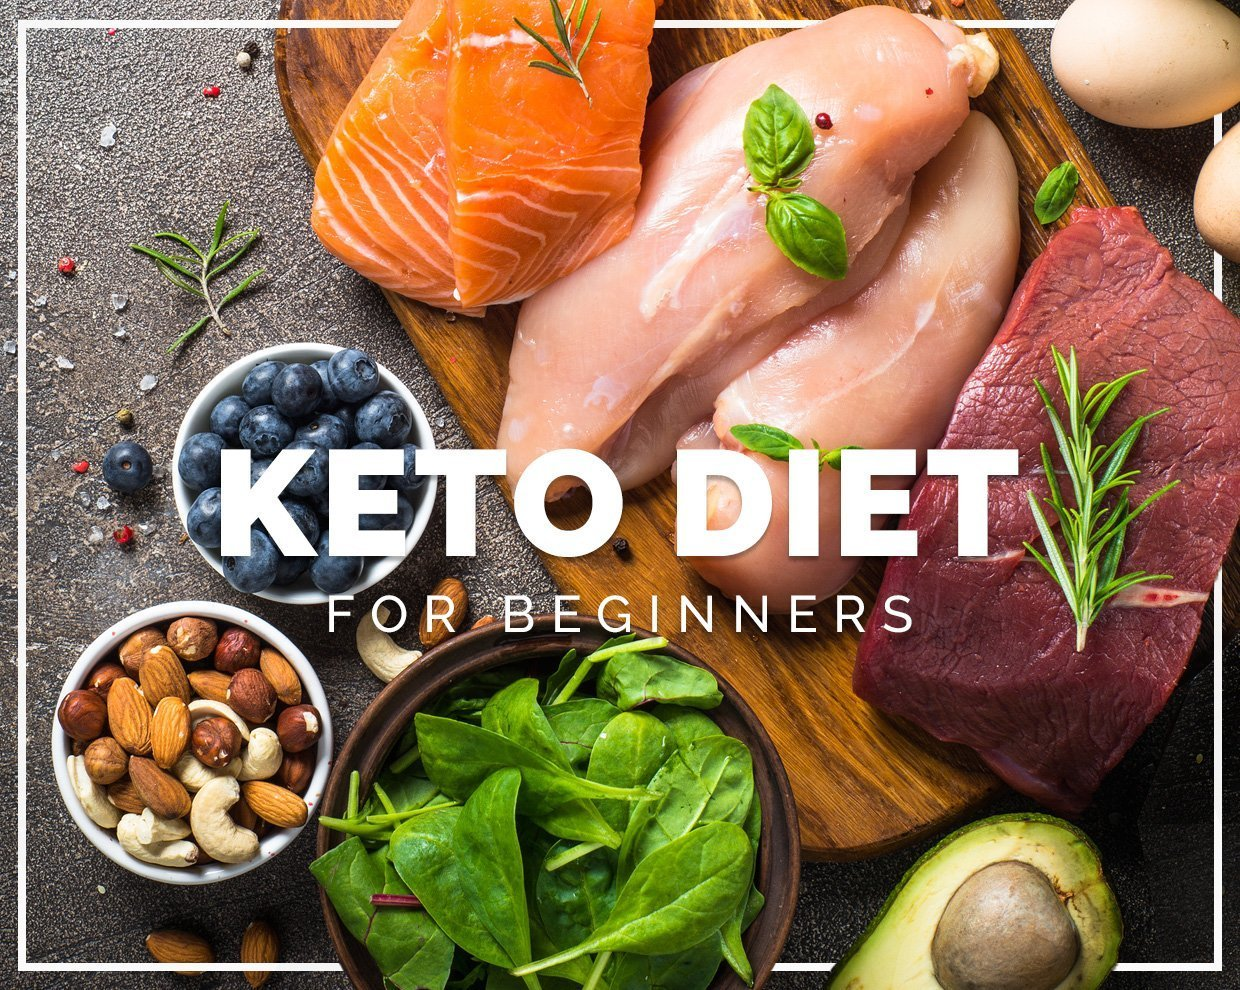 Ketogenic diet: Get fat-adapted in 4 easy steps